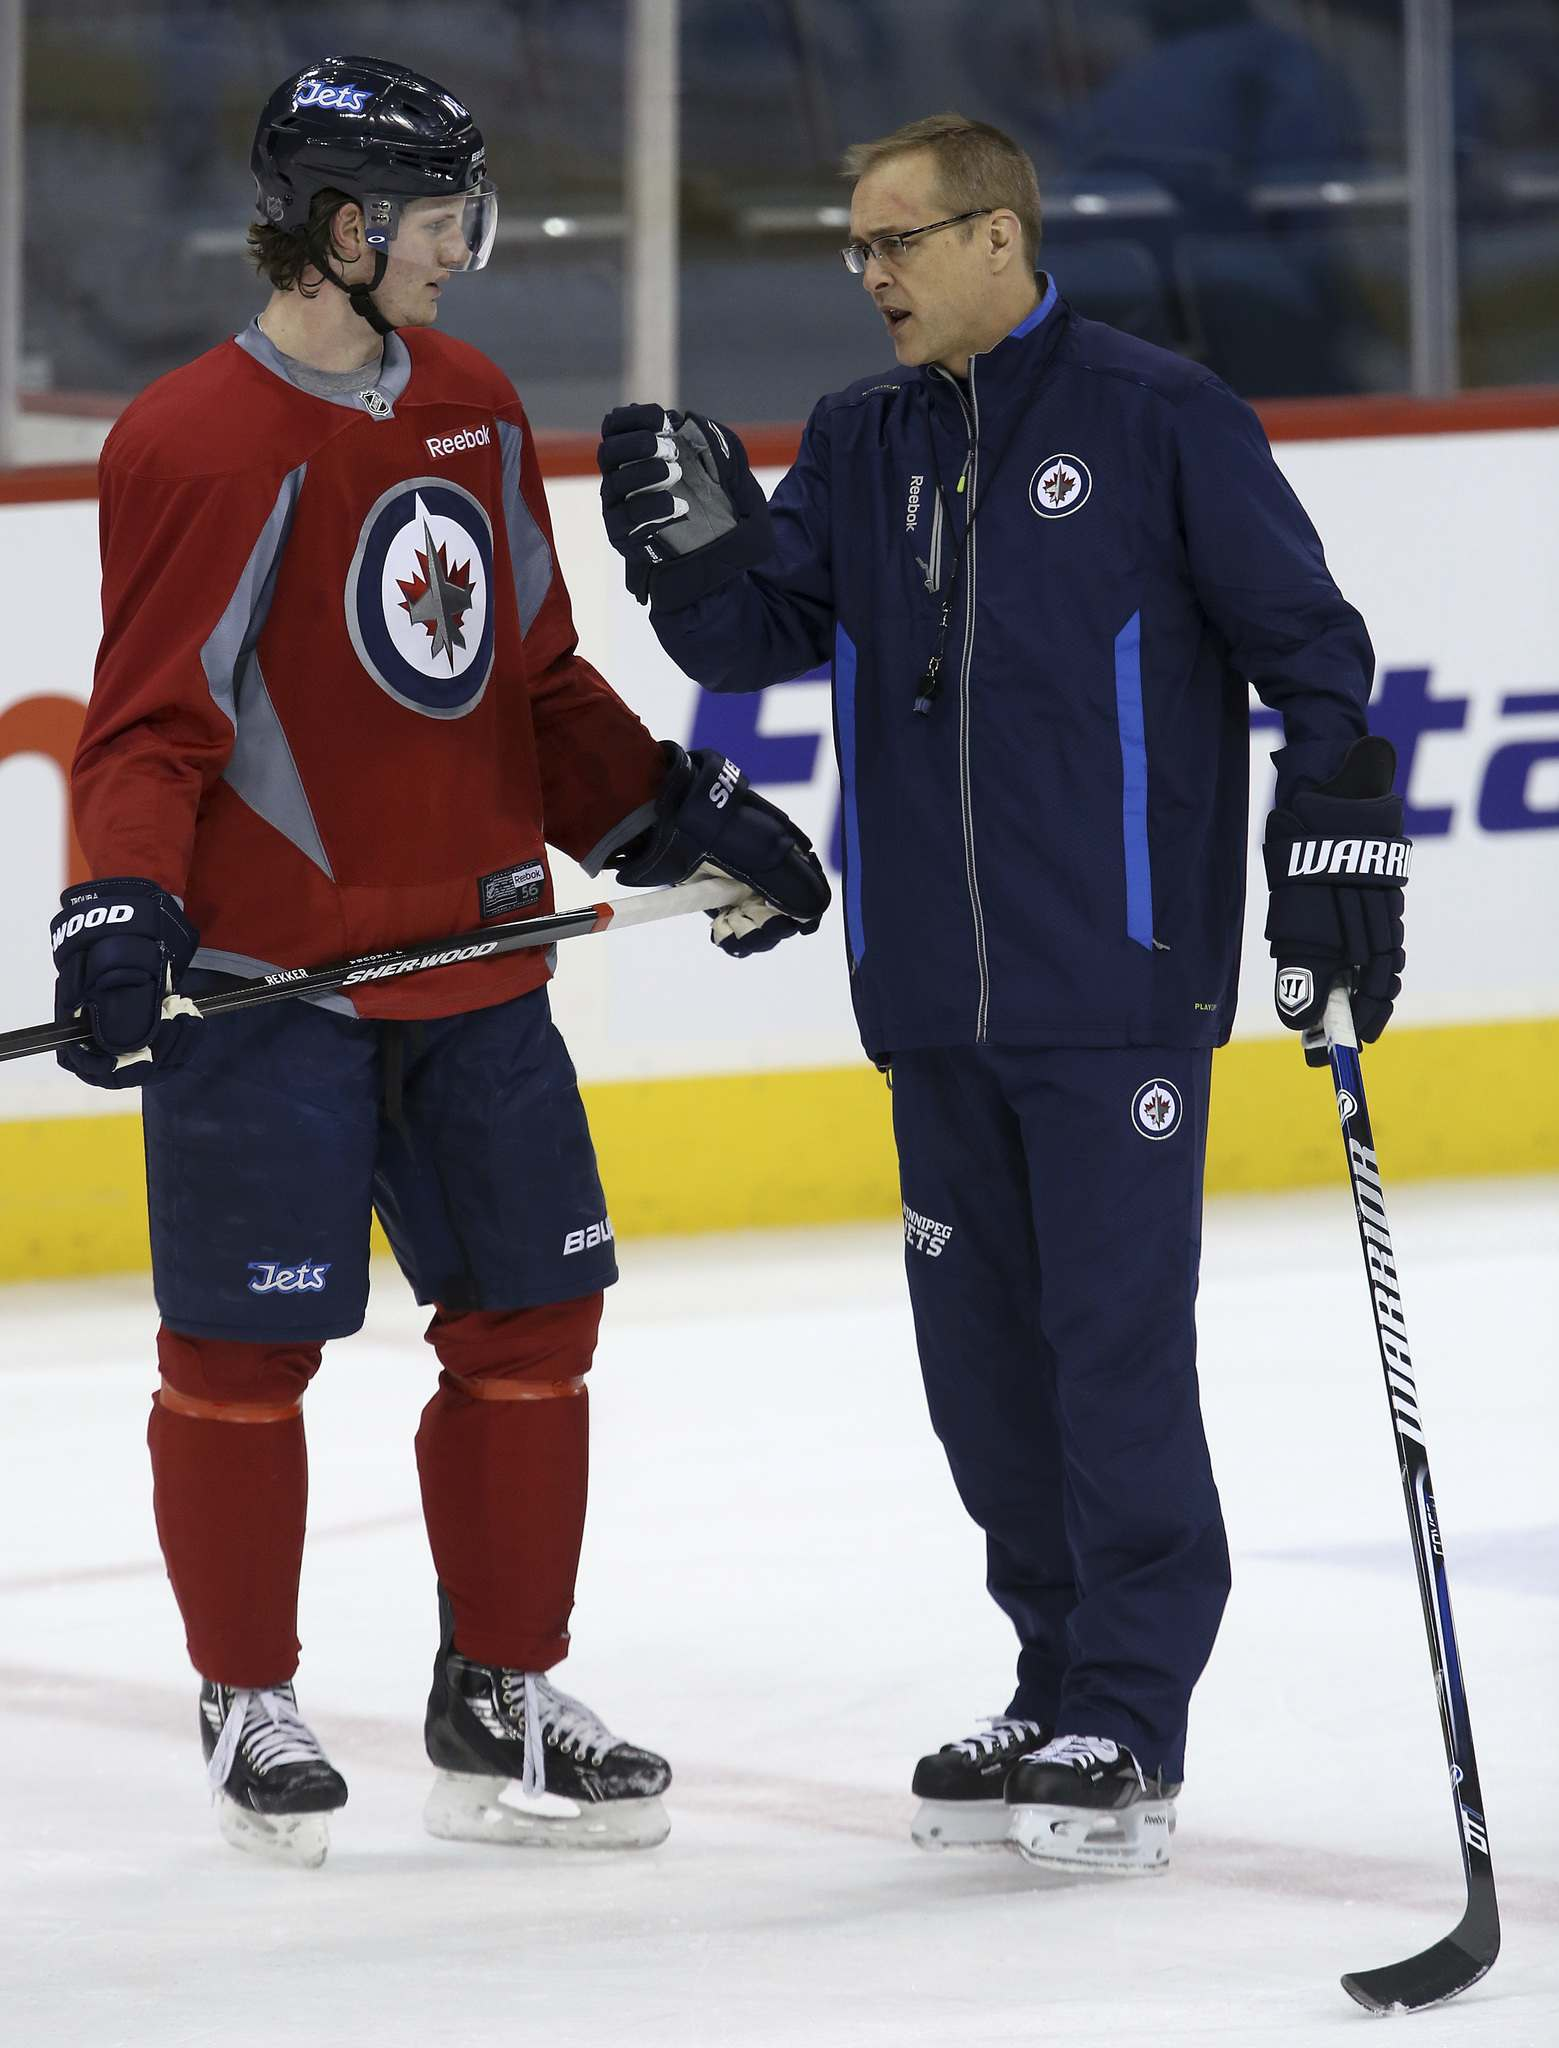 """""""Not surprised. You know it's coming. I like Jake (Jacob Trouba). The tough part is you feel like you invested in a player, especially a defenceman because they take a little while longer to get their feet wet and get comfortable, he was hitting his peak and in his prime,"""" Maurice said of the trade. (Trevor Hagan / Free Press files)"""